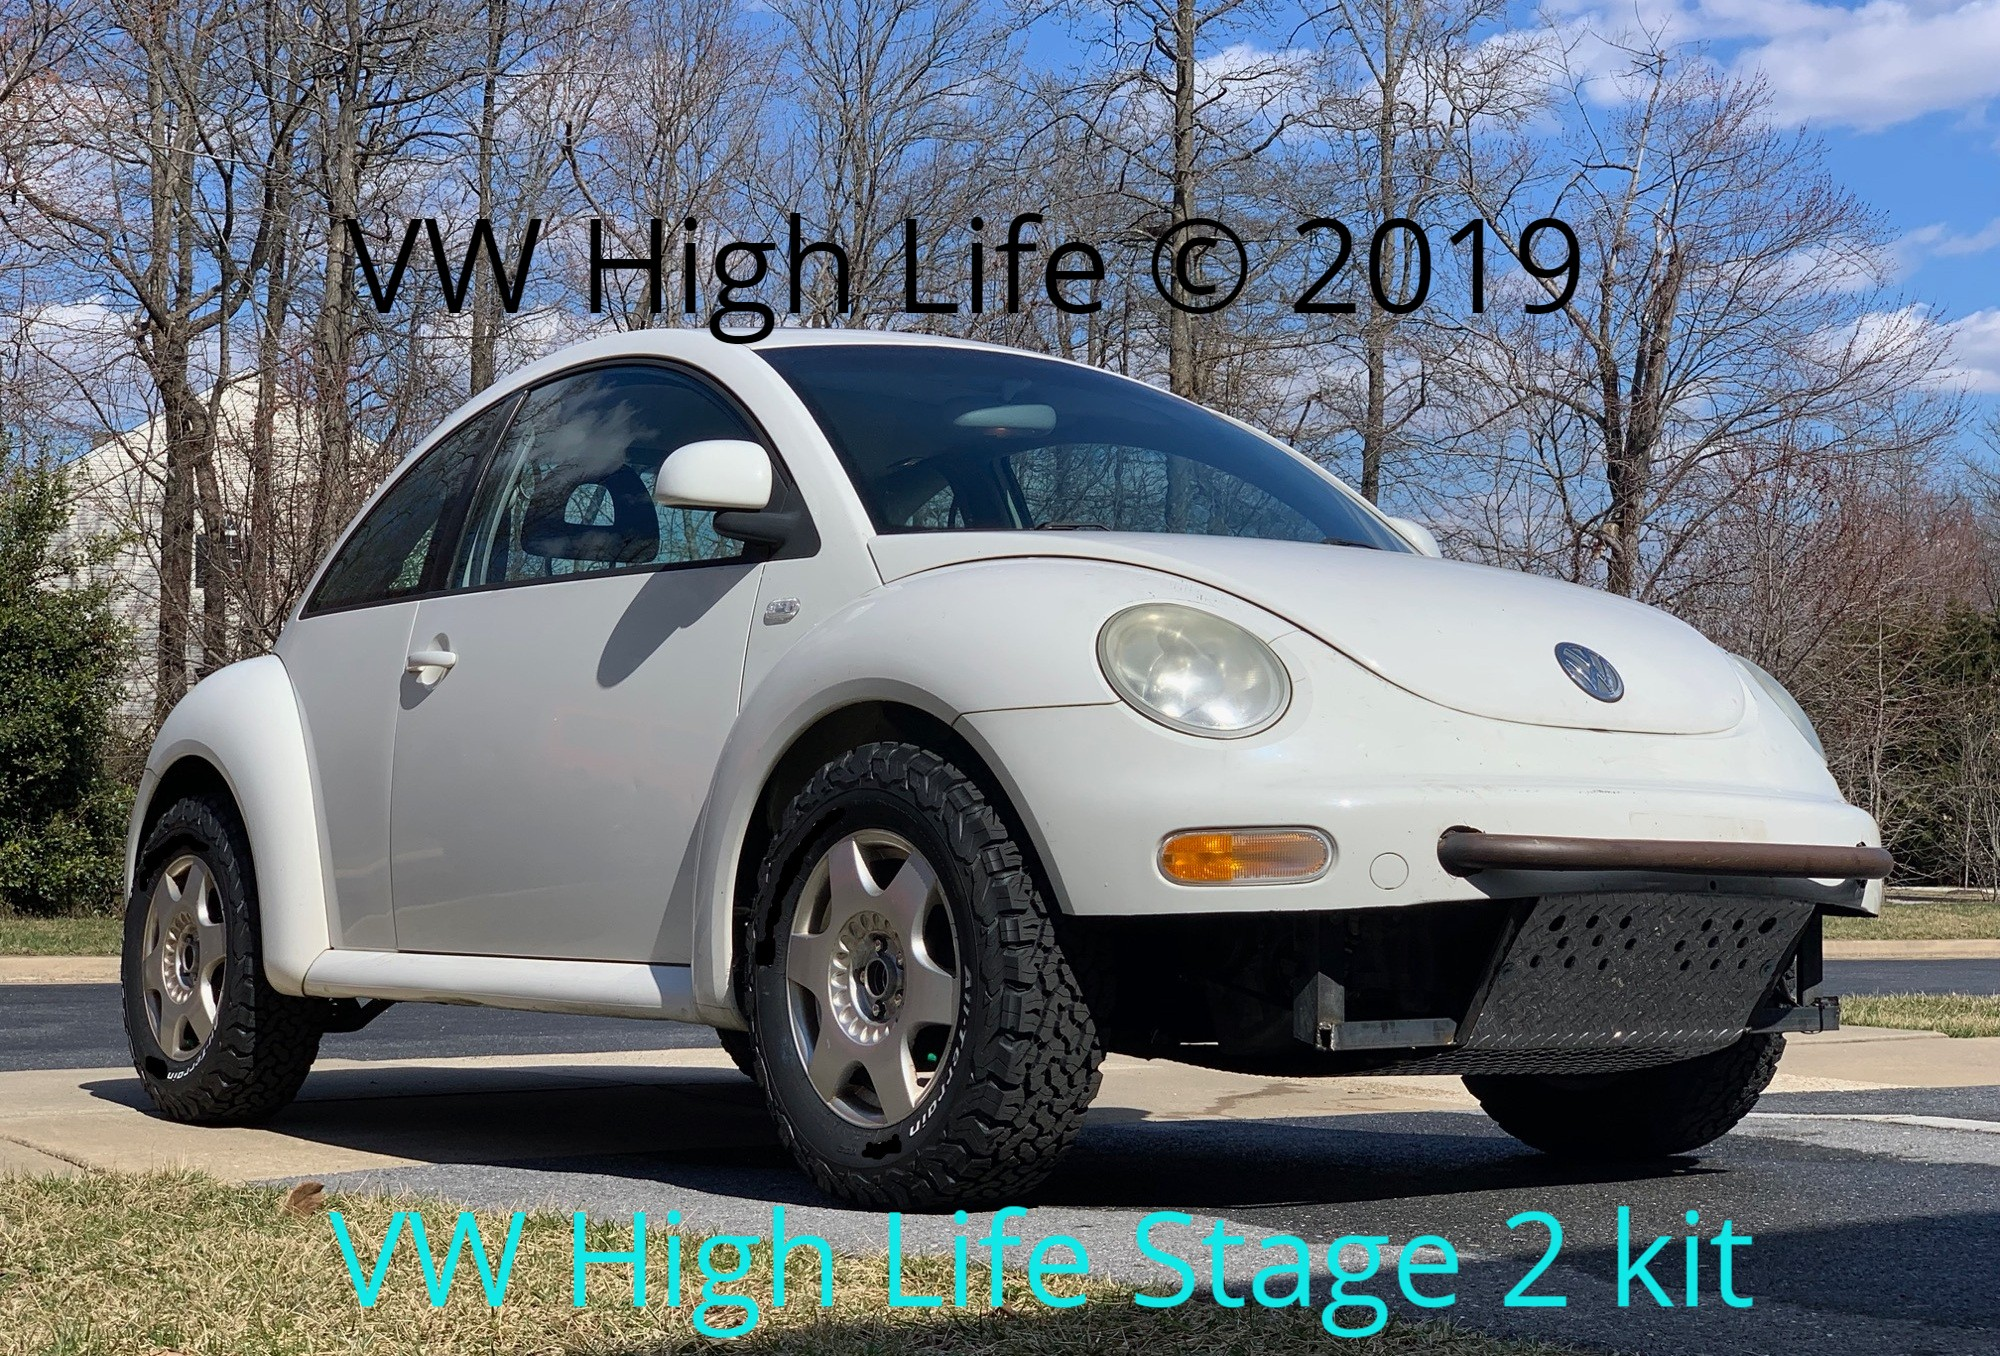 VW Beetle with 26 inch Off Road Tires lifted 2 inches in the rear & front